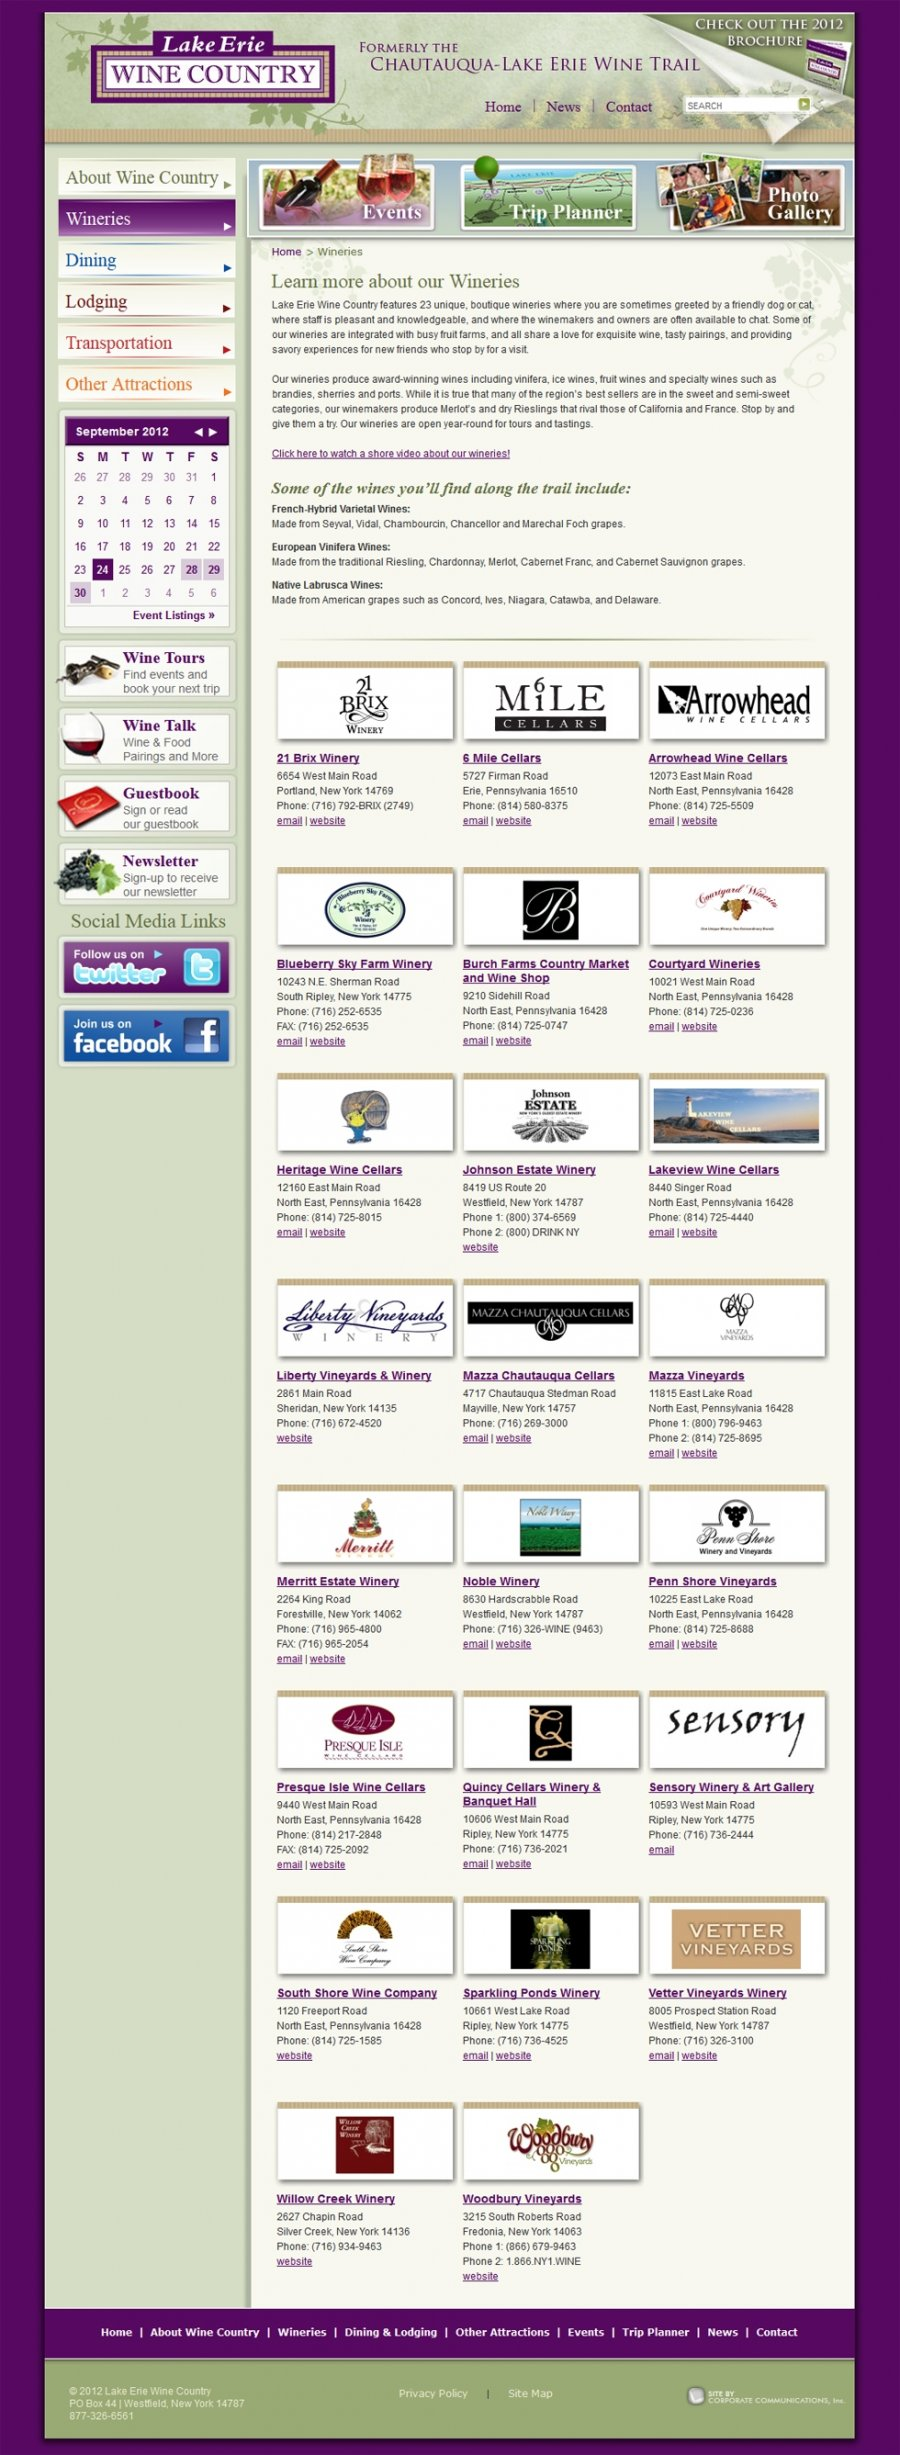 Complete Winery Directory